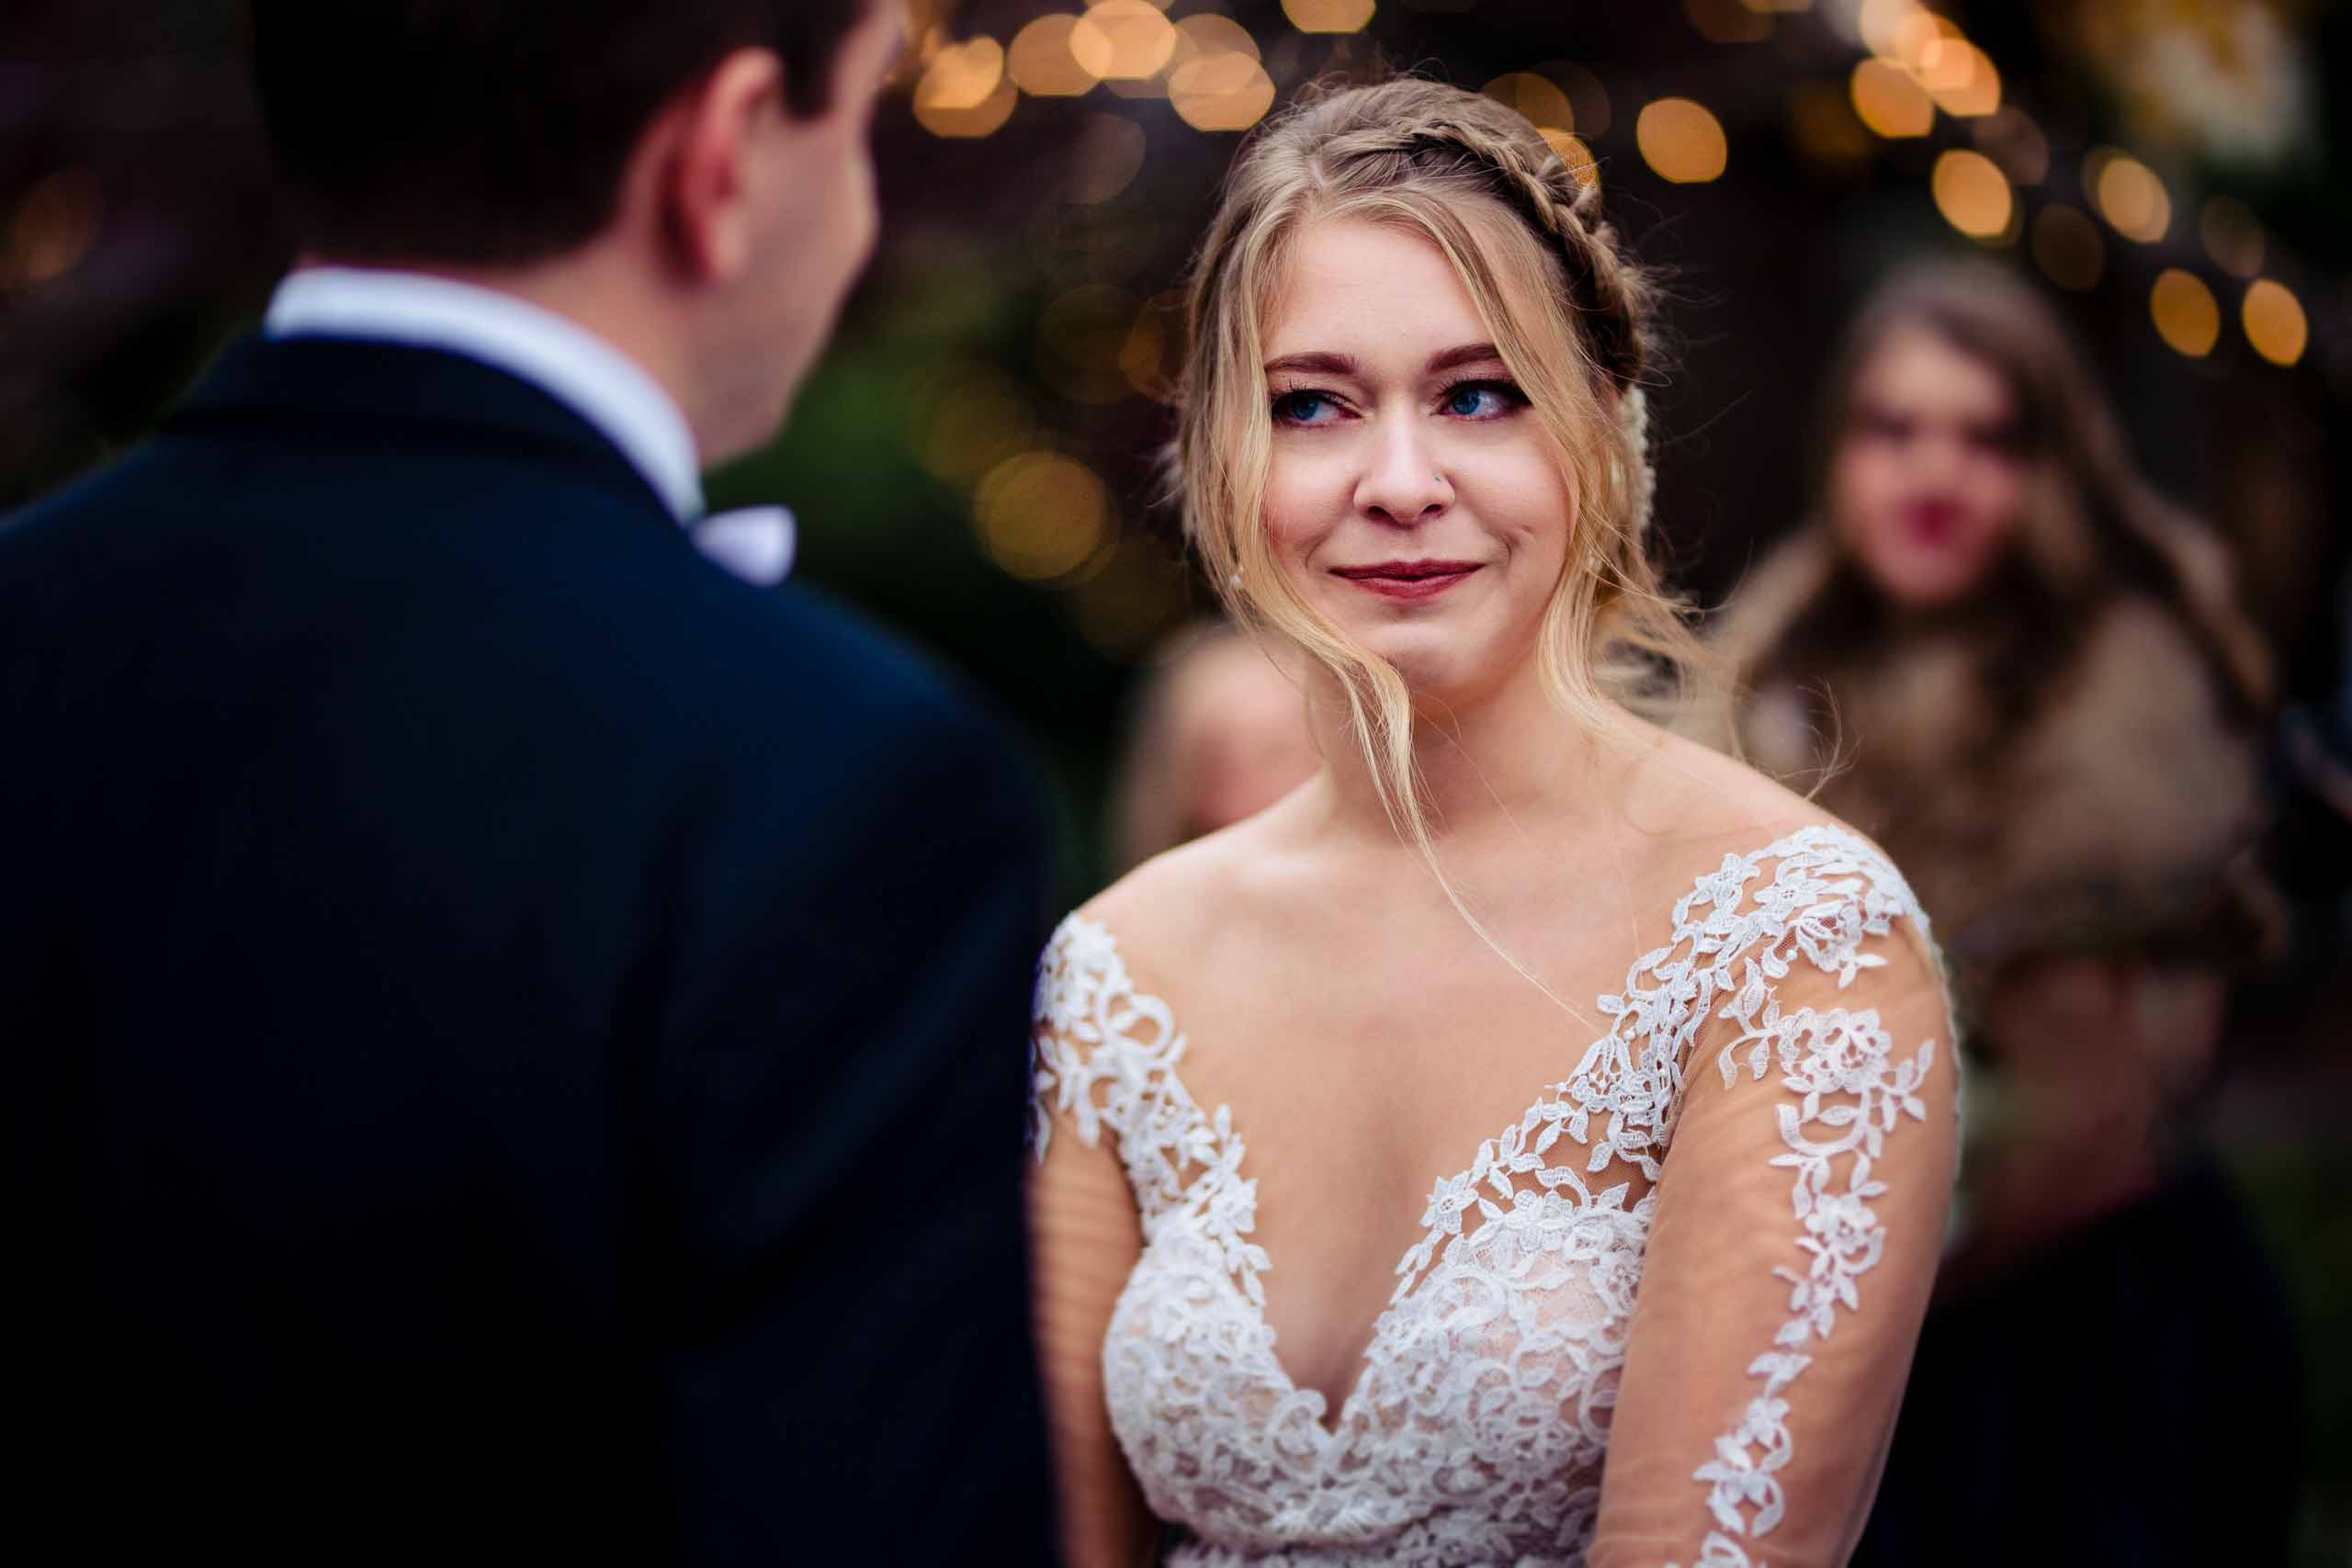 Gorgeous bride and groom exchanging vows during their Columbia Gorge Hotel wedding ceremony